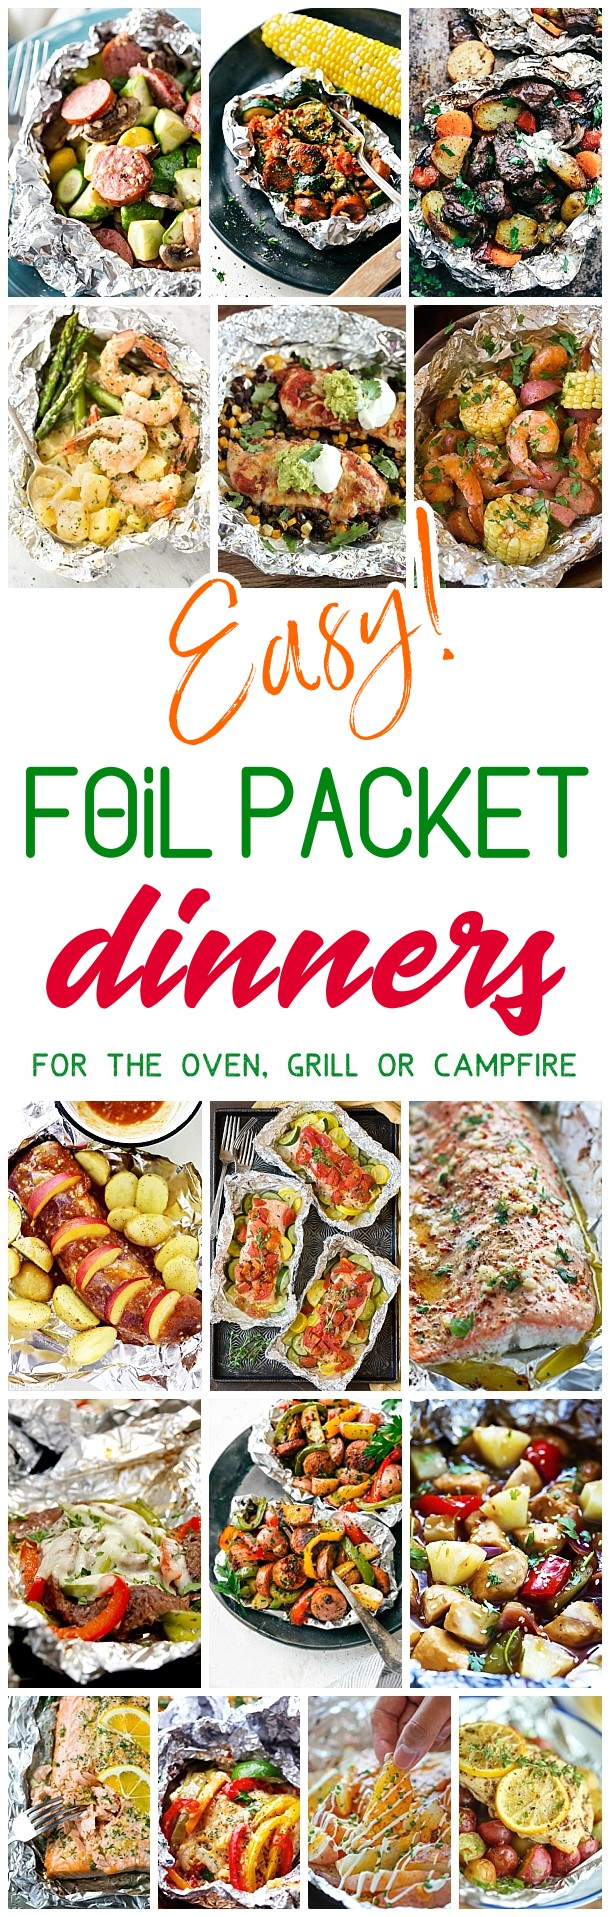 Easy Tin Foil Packets Dinners Recipes - Easy meal prep and easy, quick clean up! So many delicious chicken, beef, salmon, pork, shrimp and chicken tin foil packet dinners you and your family can enjoy making in the oven all year long, throwing on the backyard grill or tossing in the campfire coals this summer! Dreaming in DIY #tinfoildinners #tinfoilsuppers #tinfoilmeals #tinfoildinnerrecipes #foilpacketmeals #foilpacketrecipes #healthyrecipes #mealprep #healthysuppers #healthydinners #healthylunches #simplefamilymeals #simplefamilyrecipes #simplerecipes